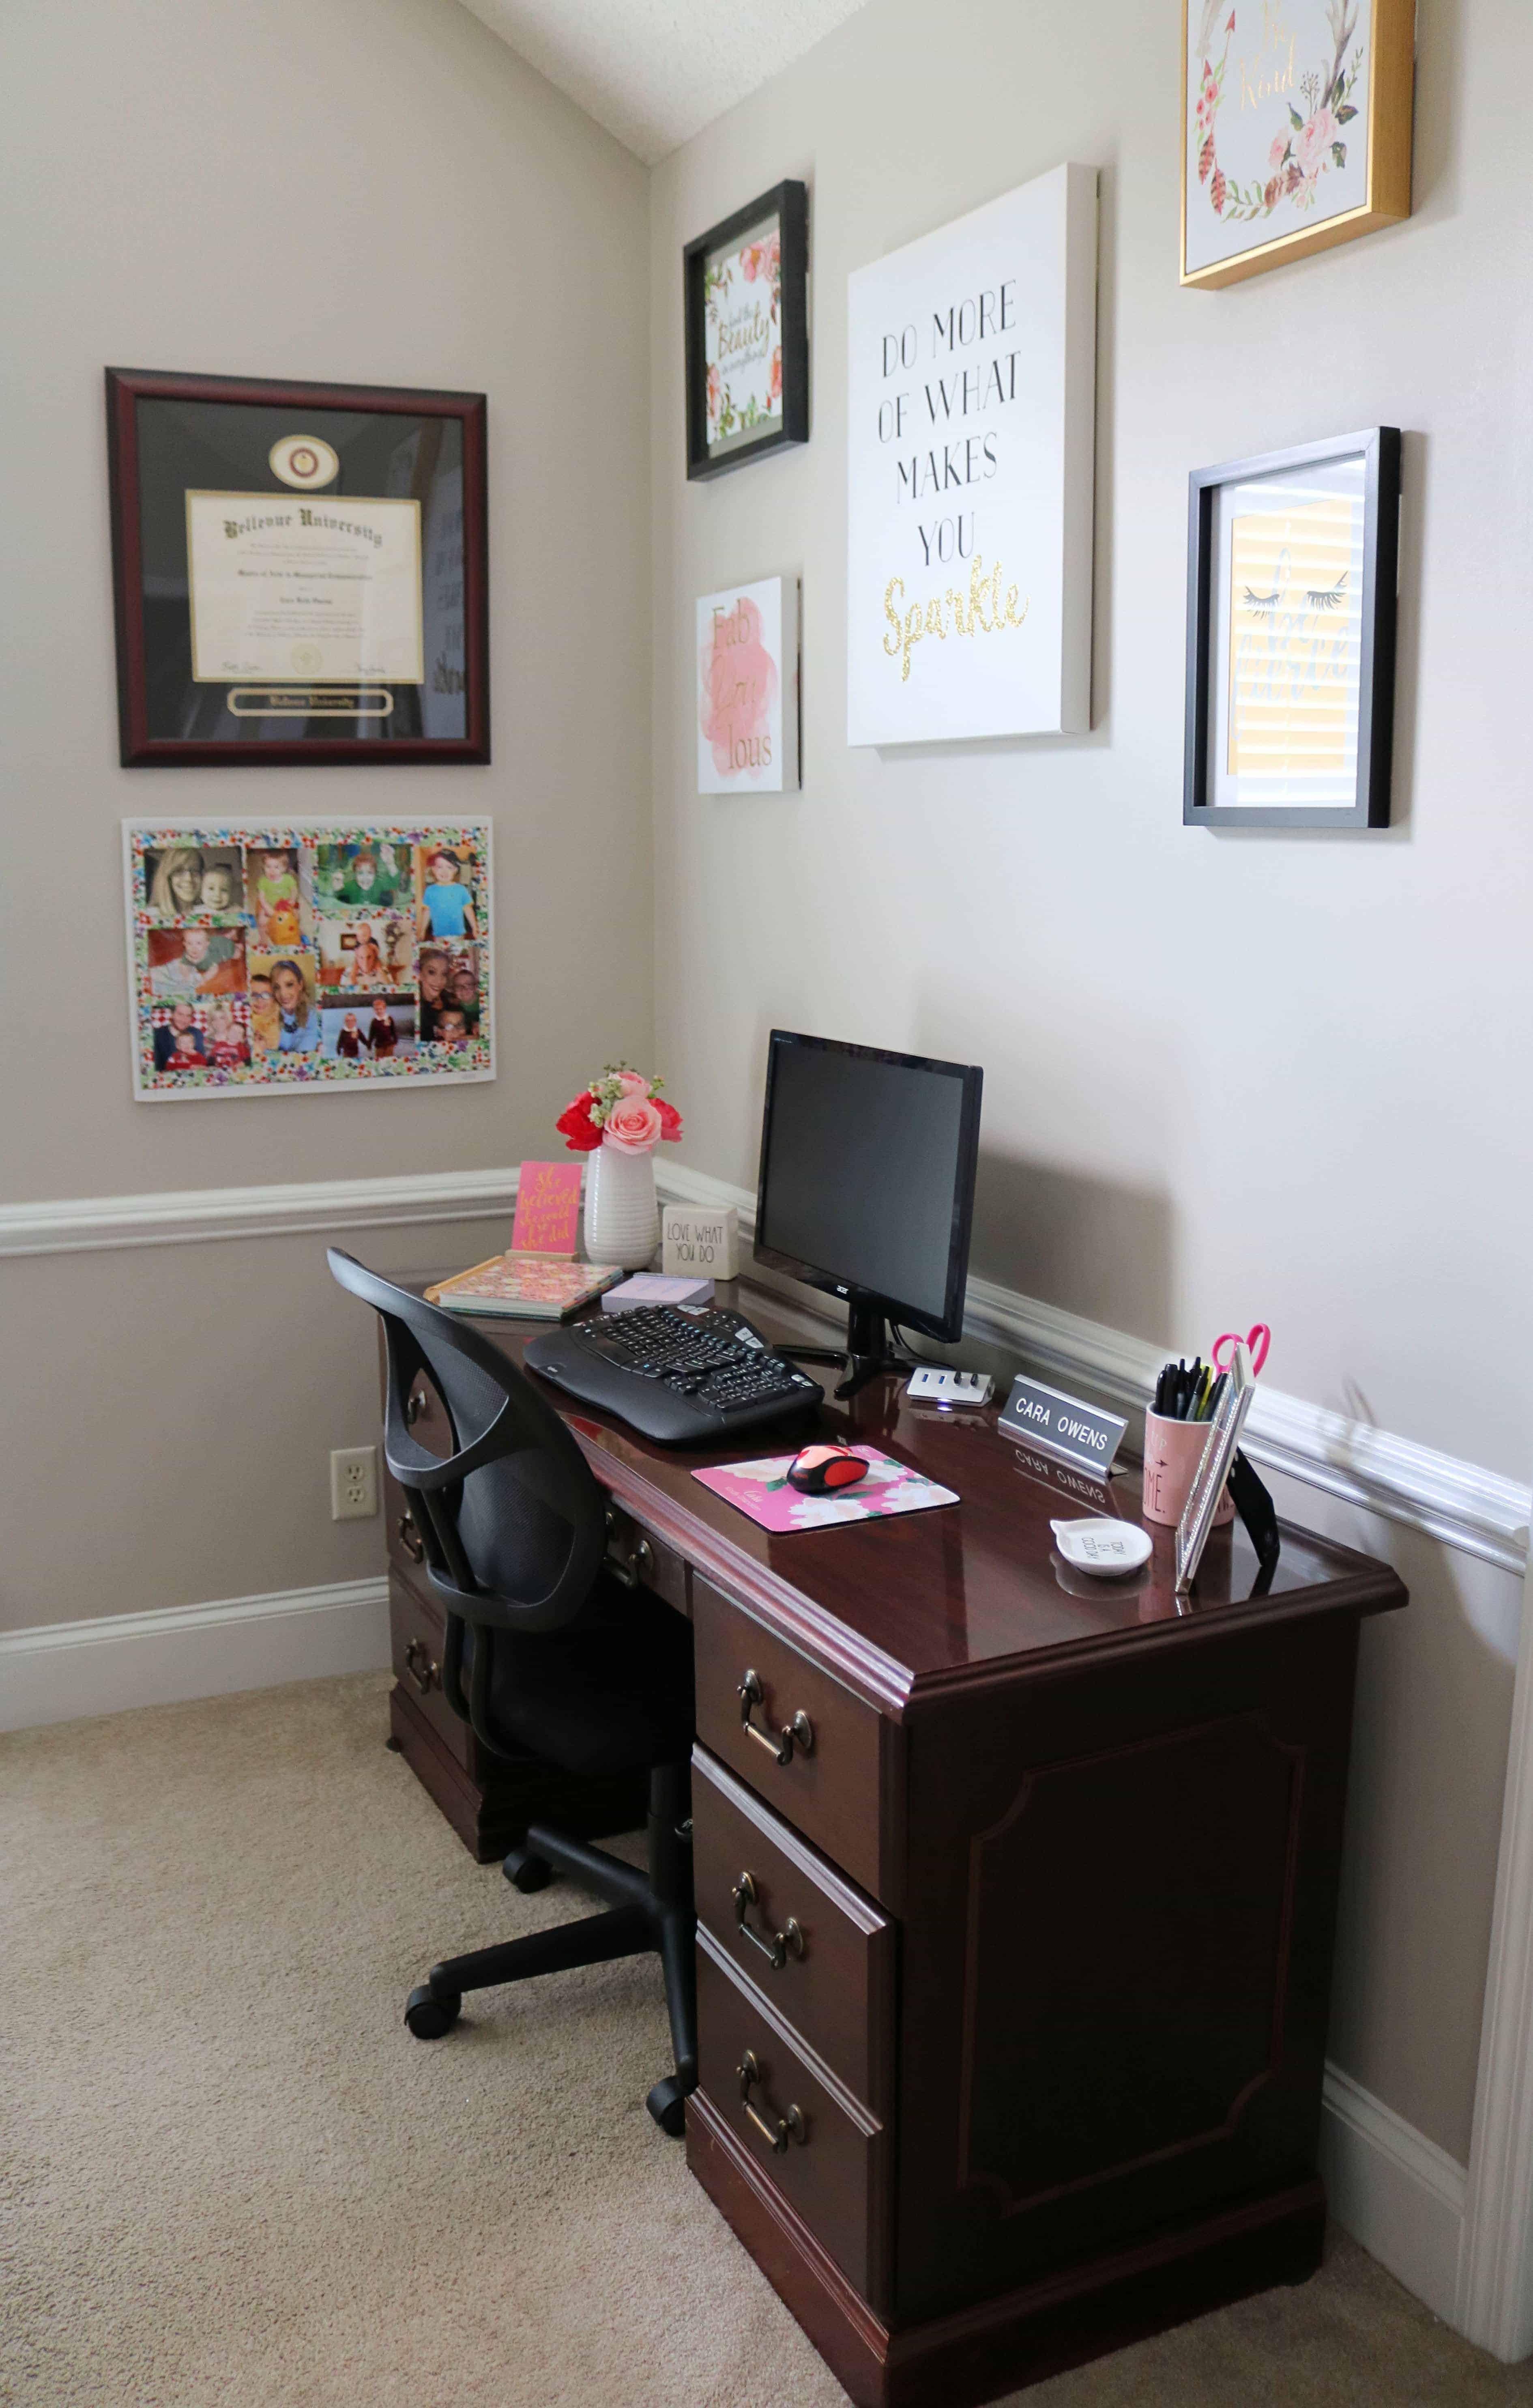 Dream home office Modern Tips For Decorating Home Office My Home Office Reveal Kindly Unspoken Tips For Decorating Home Office My Home Office Reveal Kindly